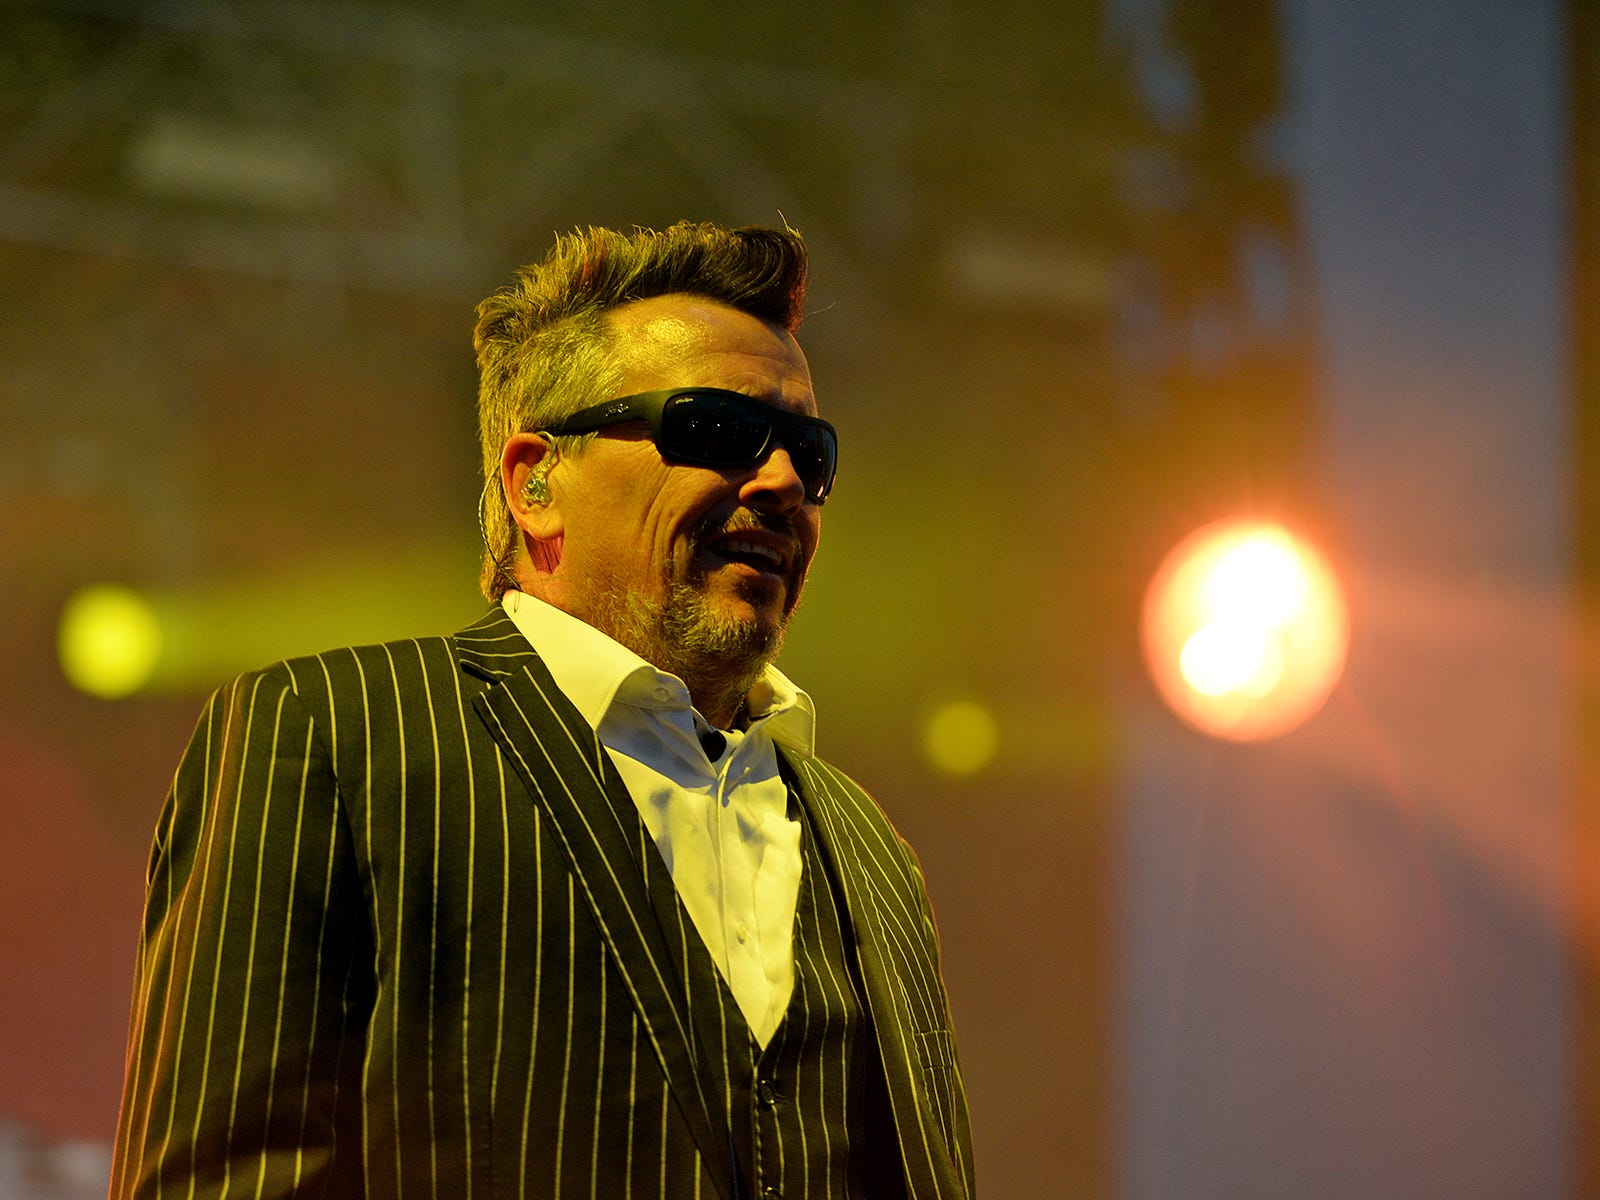 The Mighty Mighty Bosstones perform at Bash Festival in Phoenix, Ariz., on May 11, 2019.